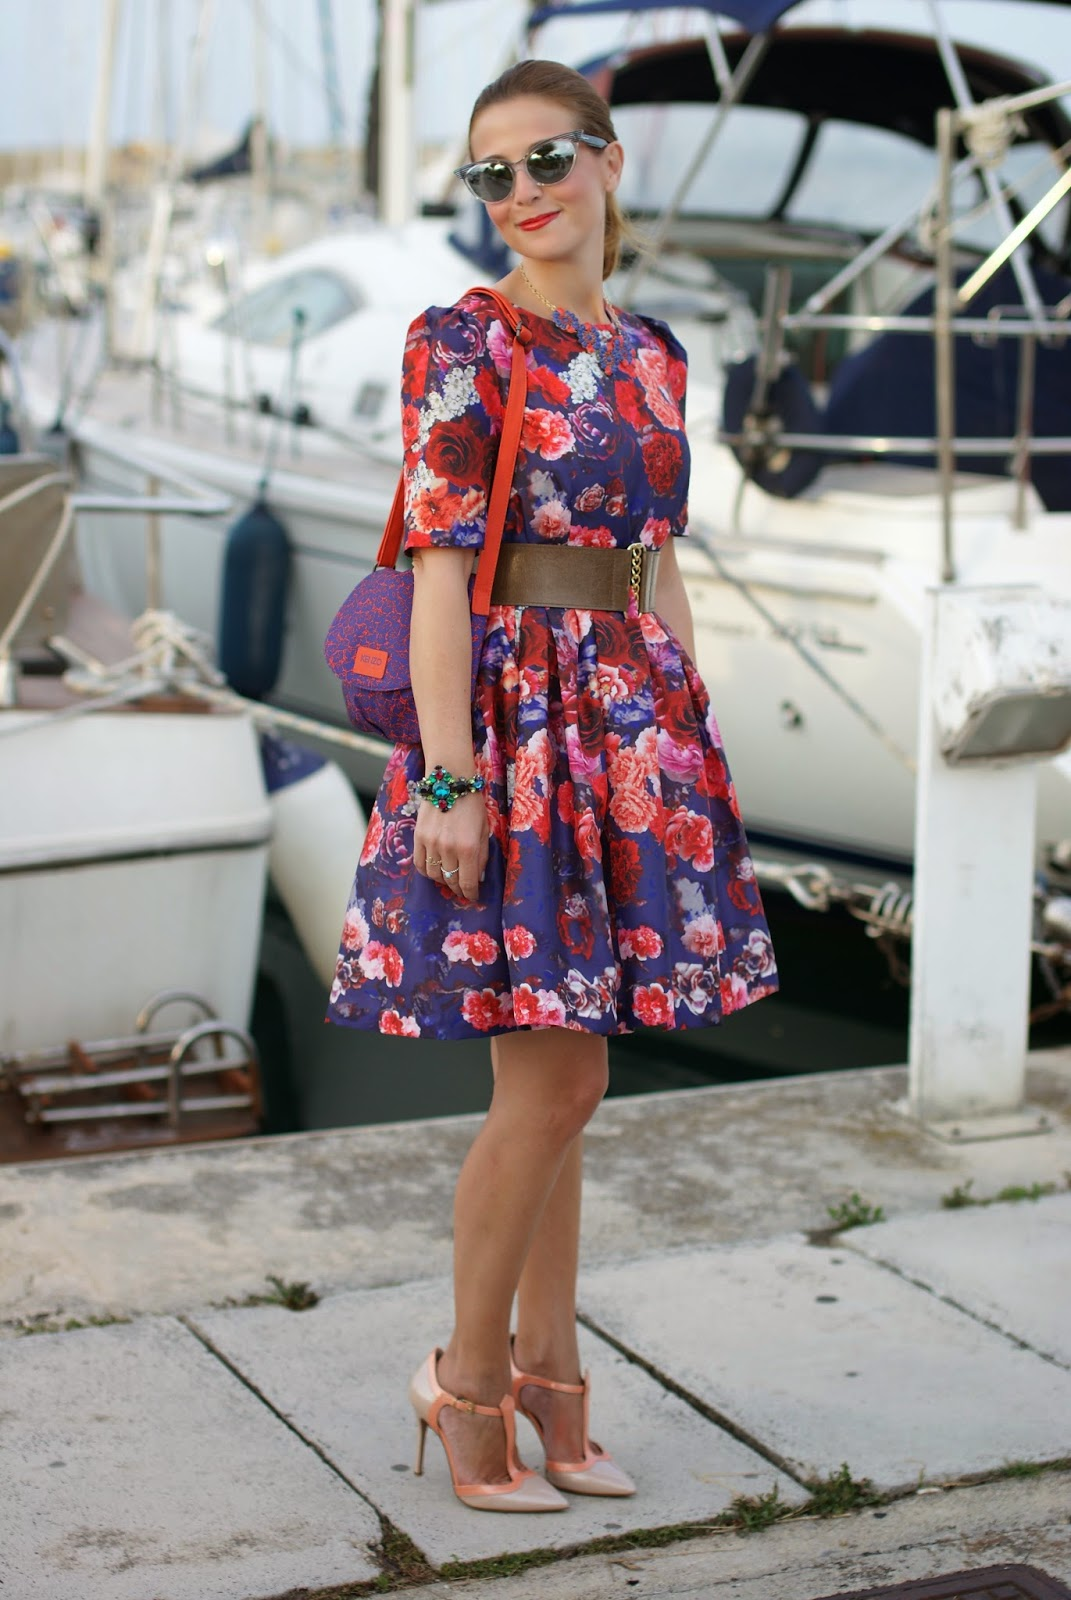 Chicwish blooming red roses dress, Sergio Levantesi shoes, Fashion and Cookies, fashion blogger